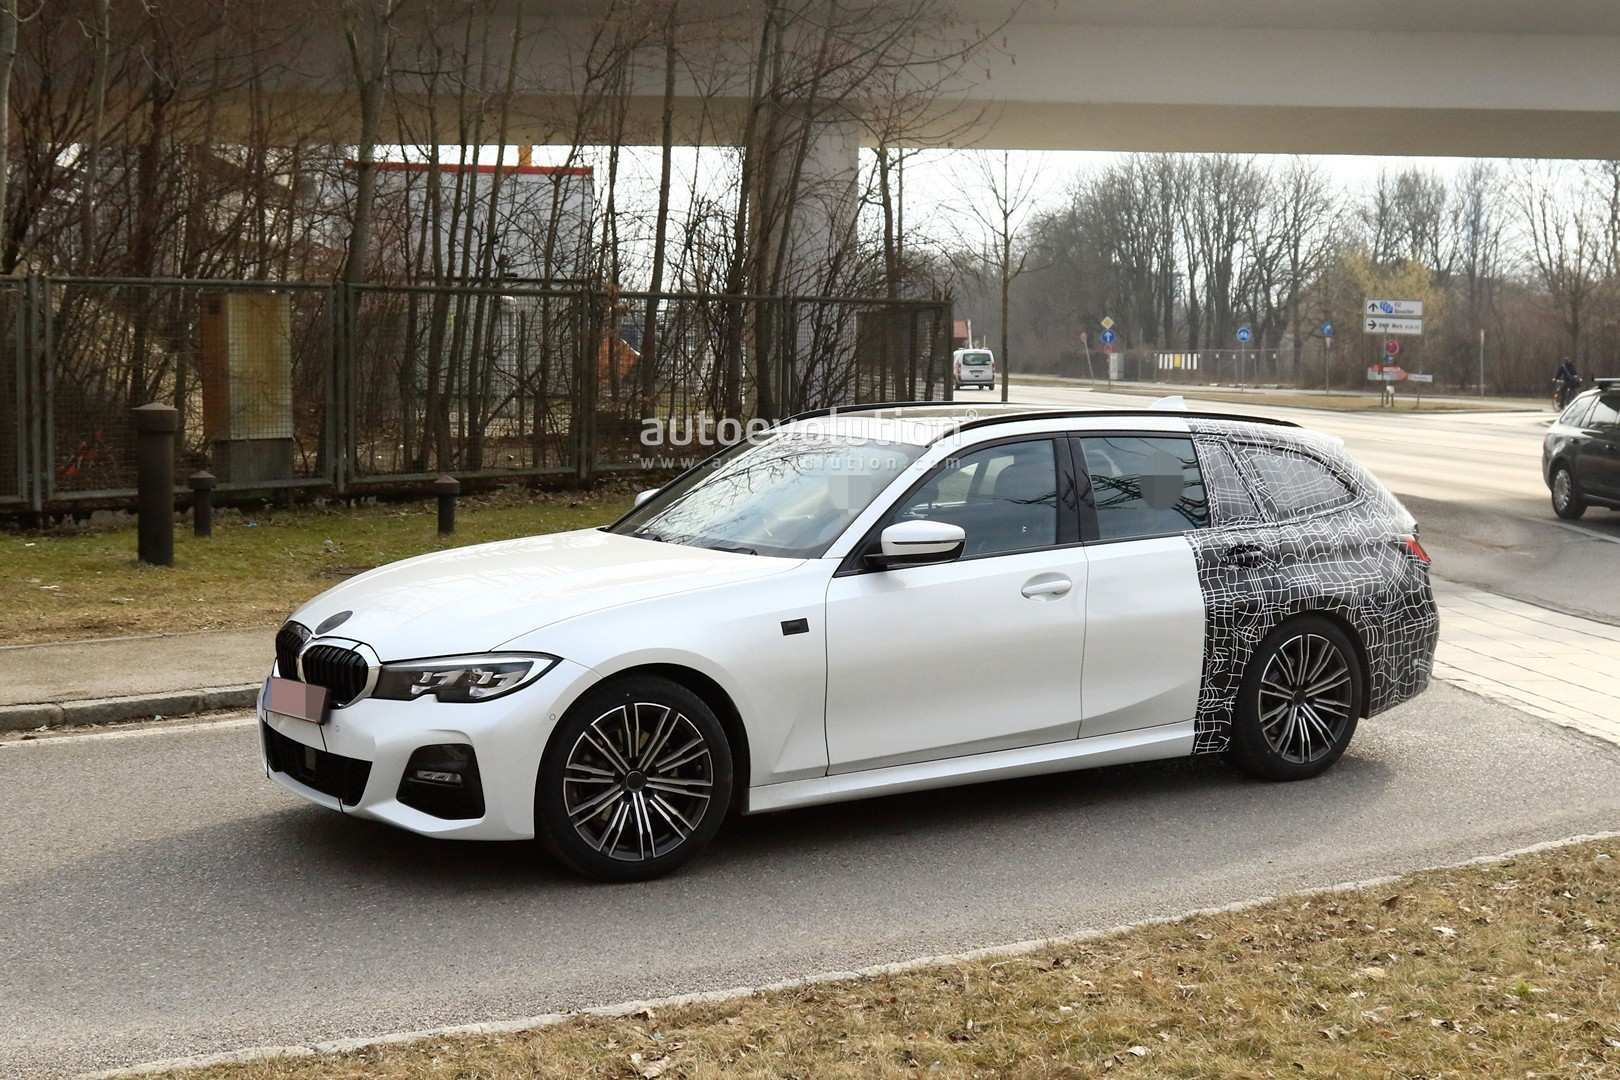 33 Great New BMW 3 Series Touring 2020 Configurations with New BMW 3 Series Touring 2020